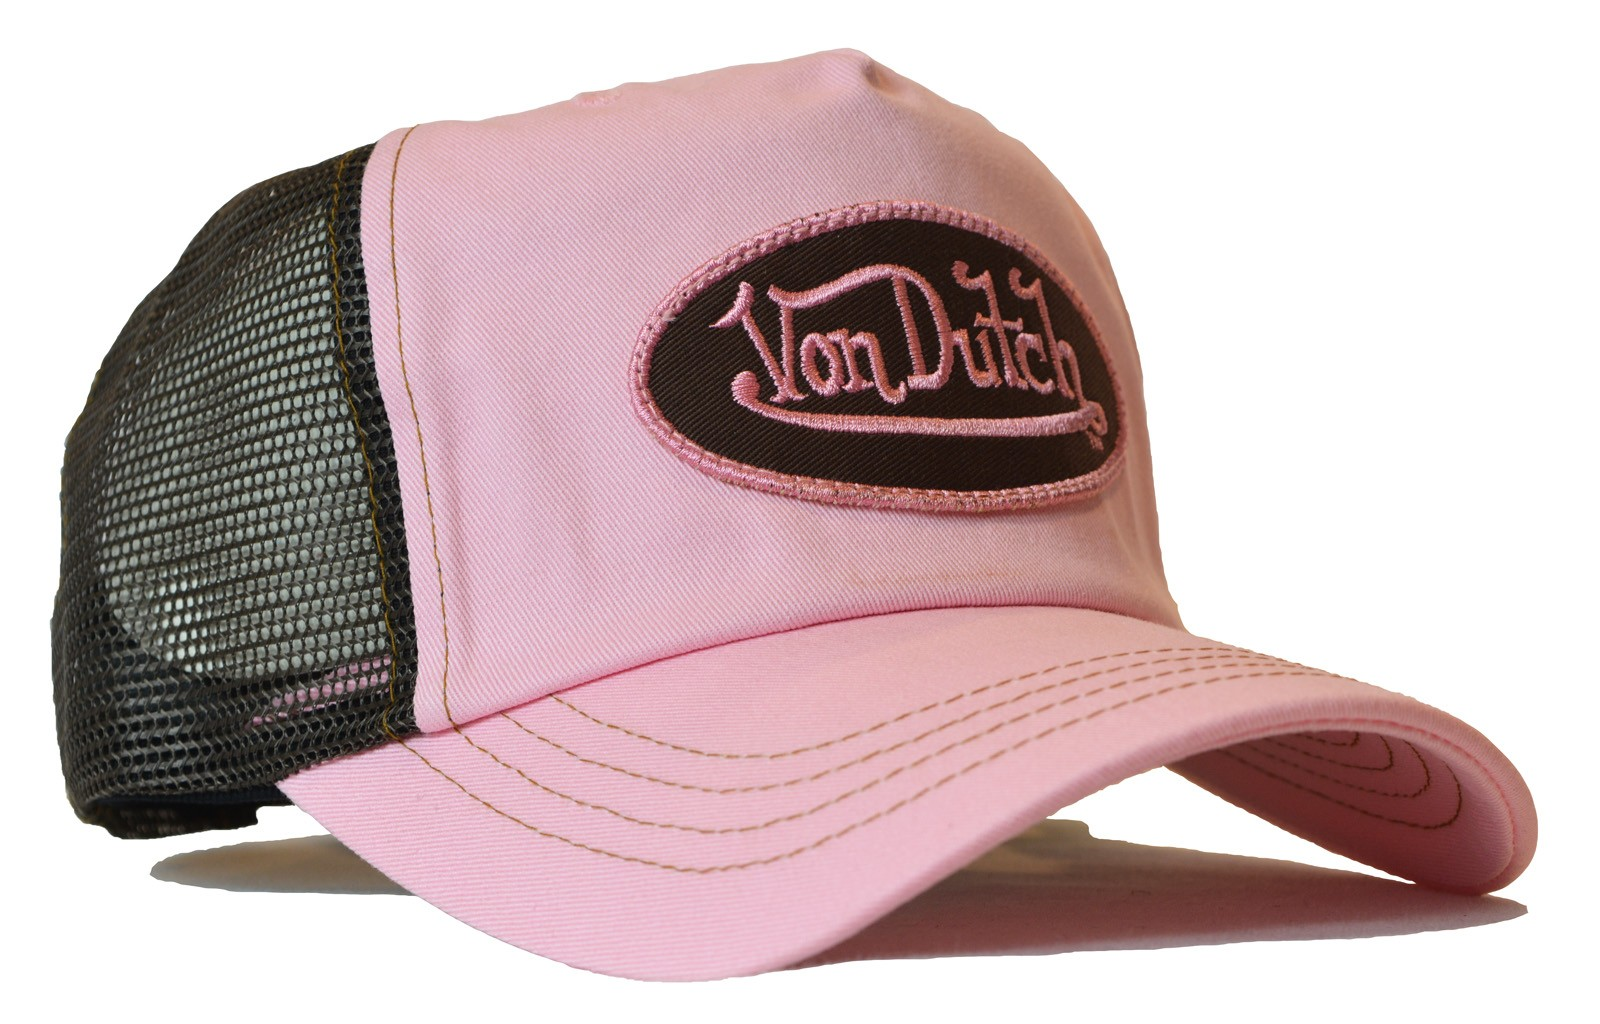 Von Dutch - Classic Pink/Brown Mesh Trucker Cap